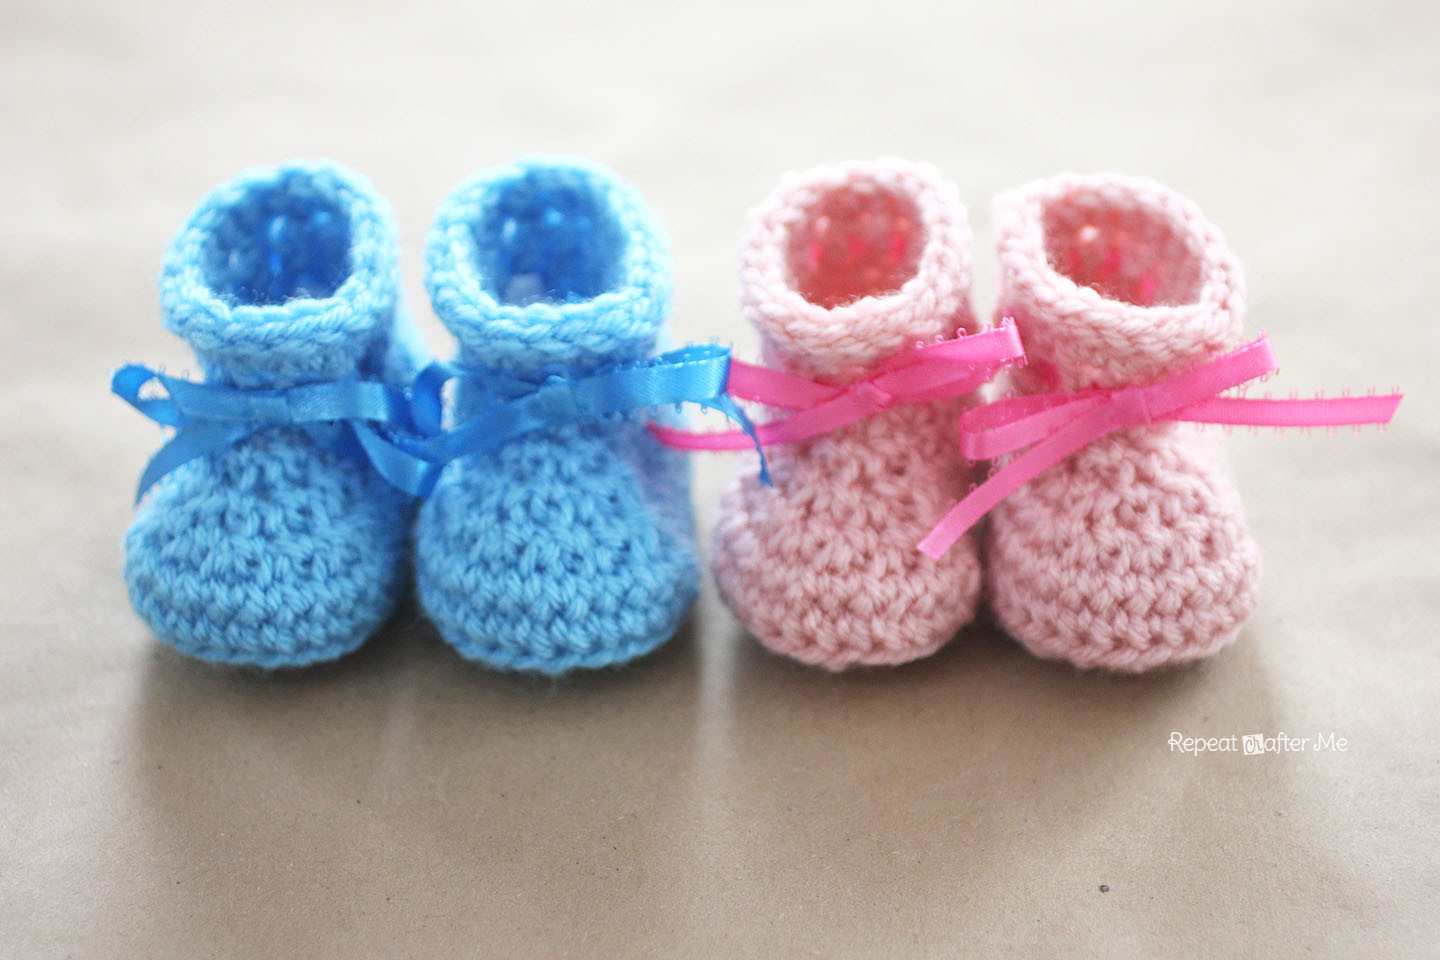 Crochet Newborn Baby Shoes Design with Chain and Free